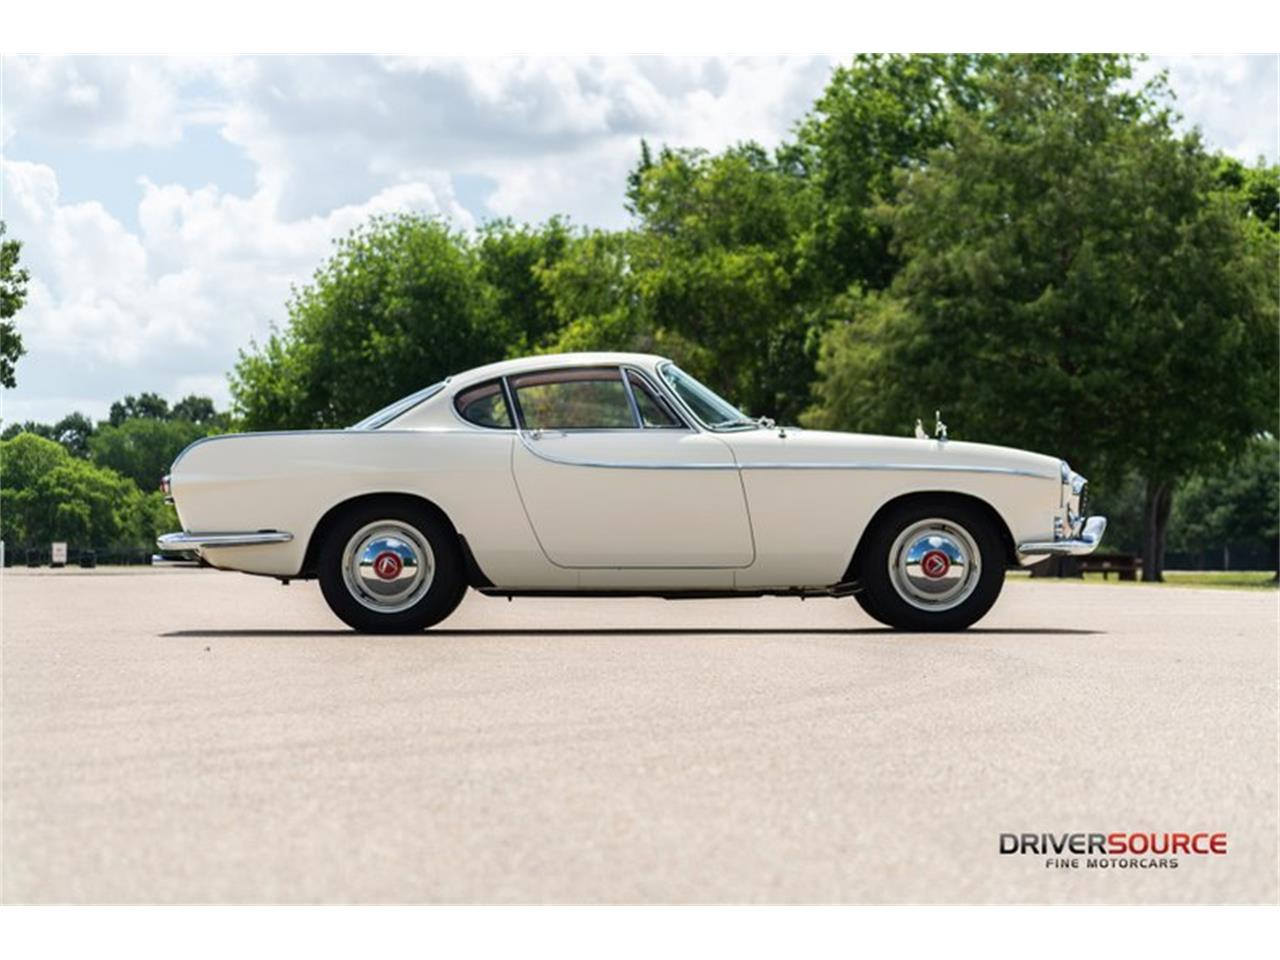 Large Picture of Classic 1964 P1800E Offered by Driversource - NNM3